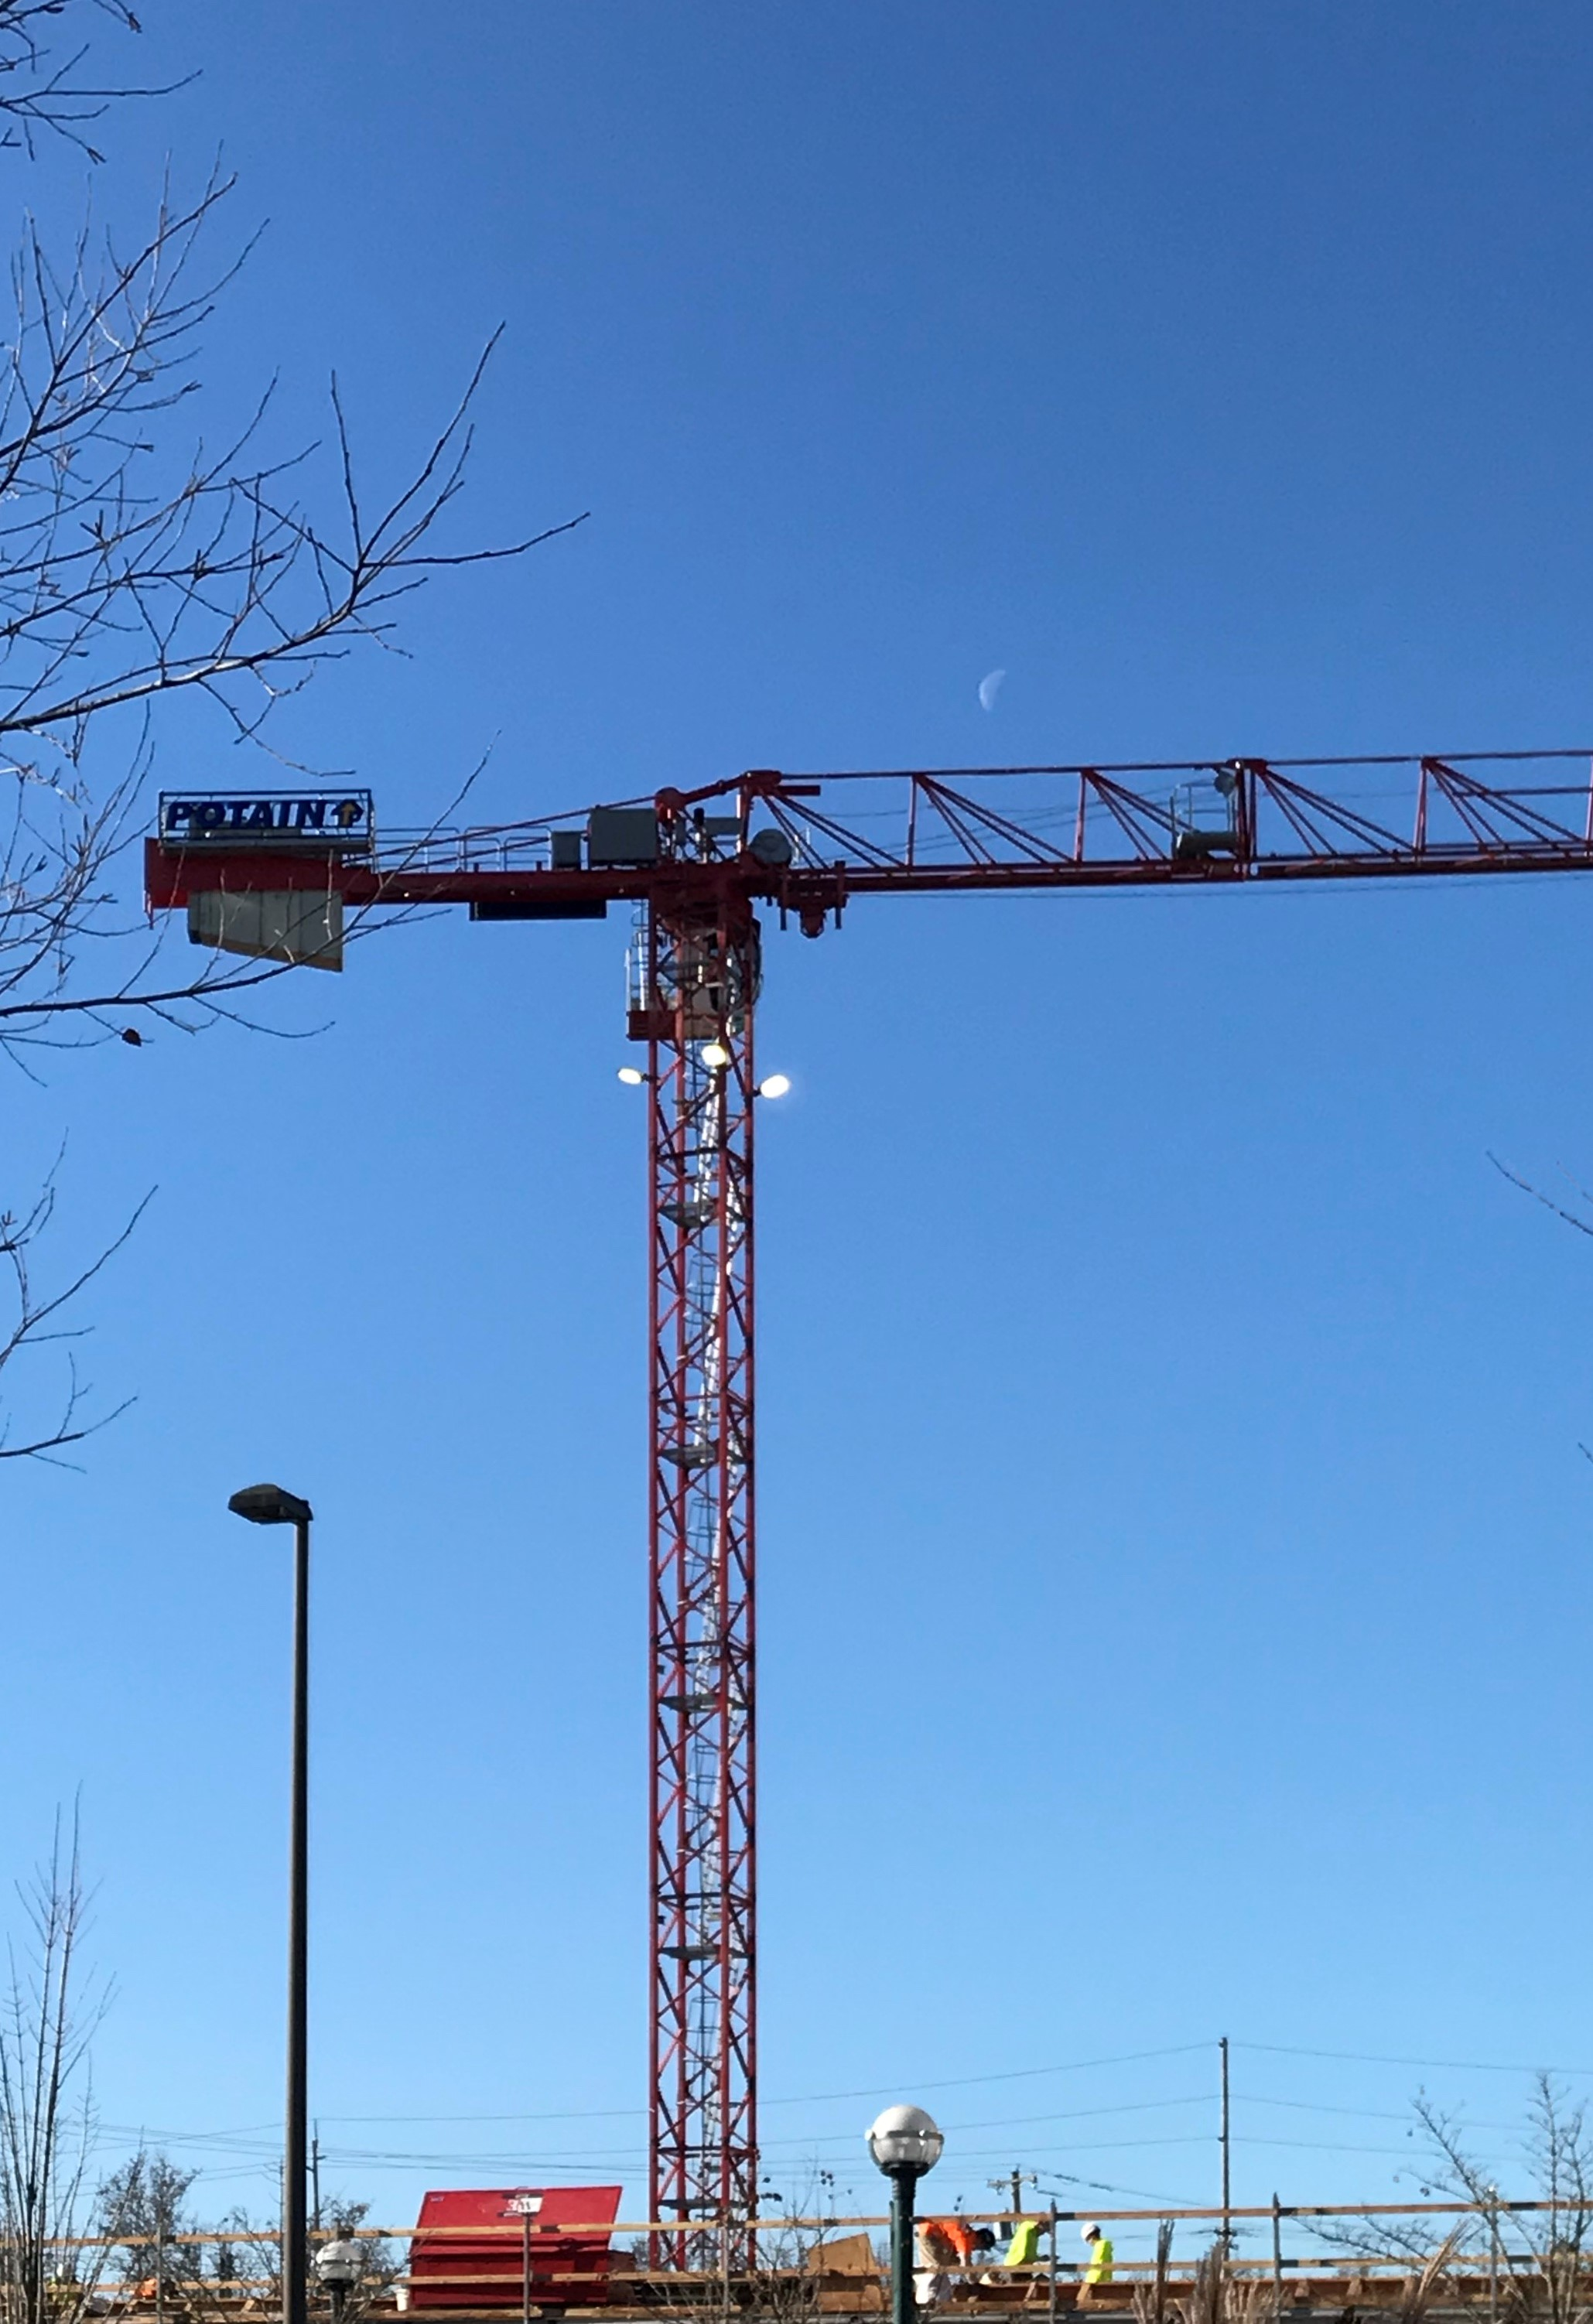 Hyatt Crane Construction 11 20 19